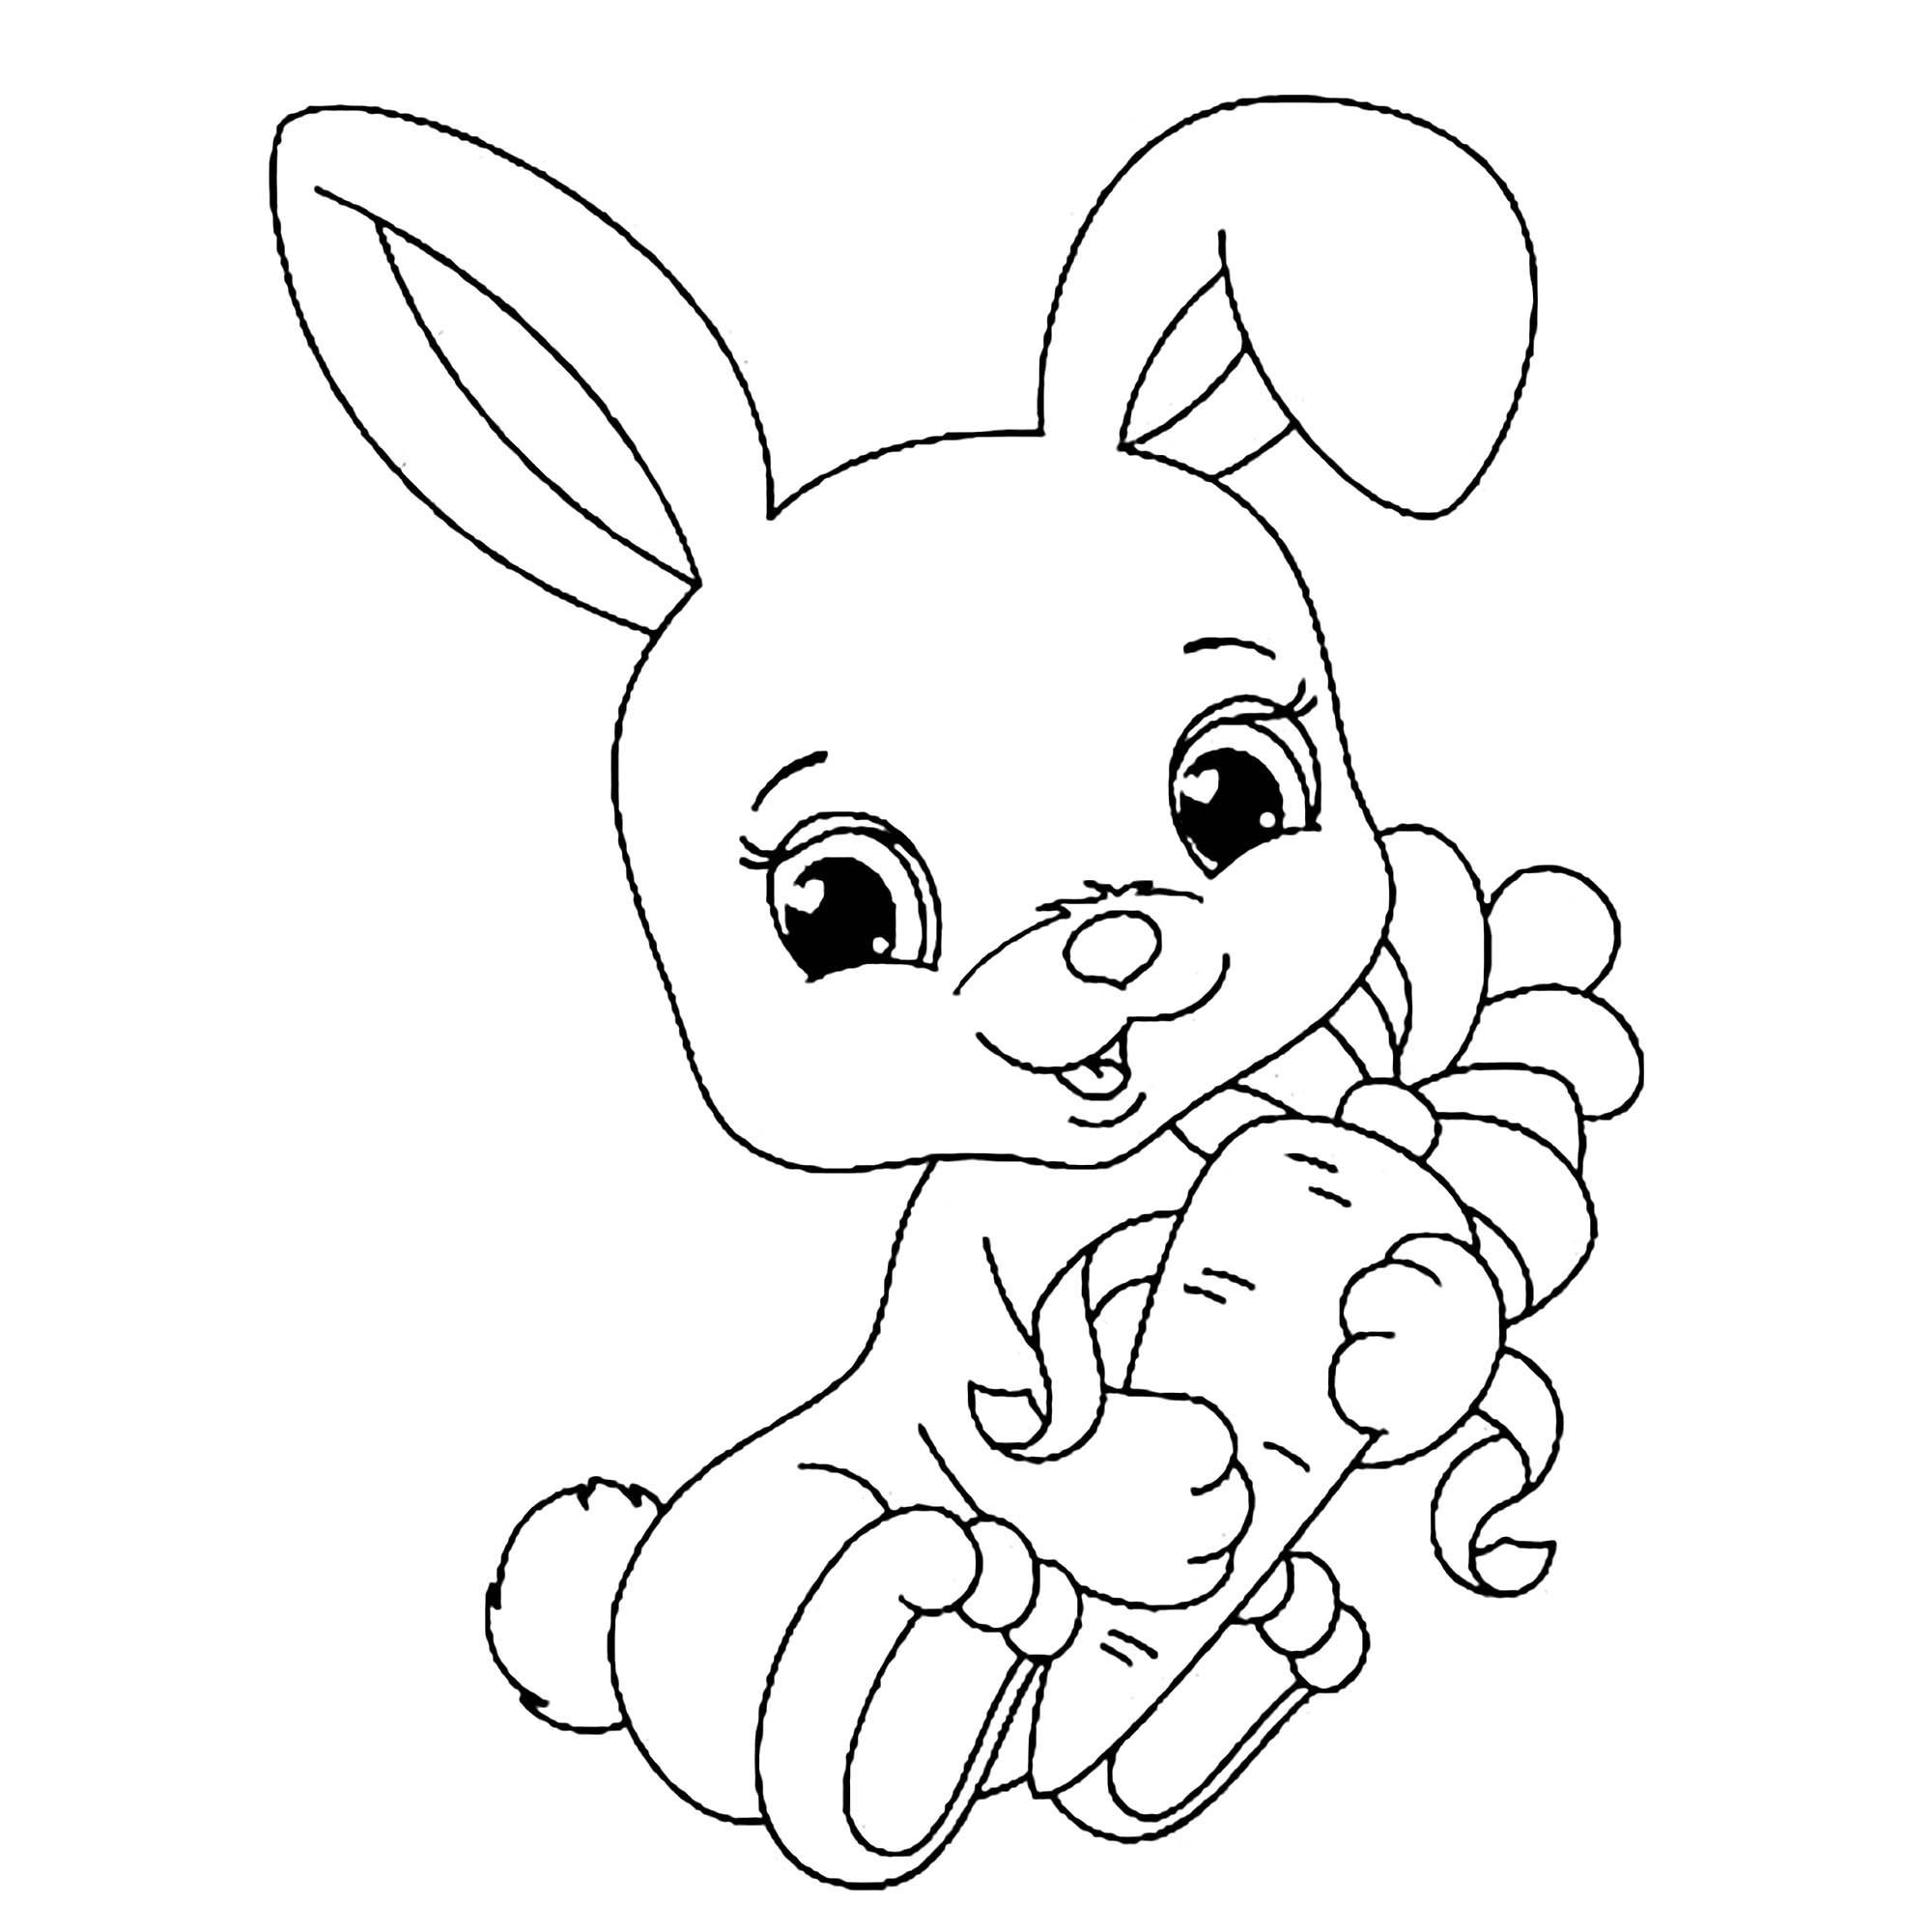 rabbit picture for colouring free printable rabbit coloring pages for kids for picture rabbit colouring